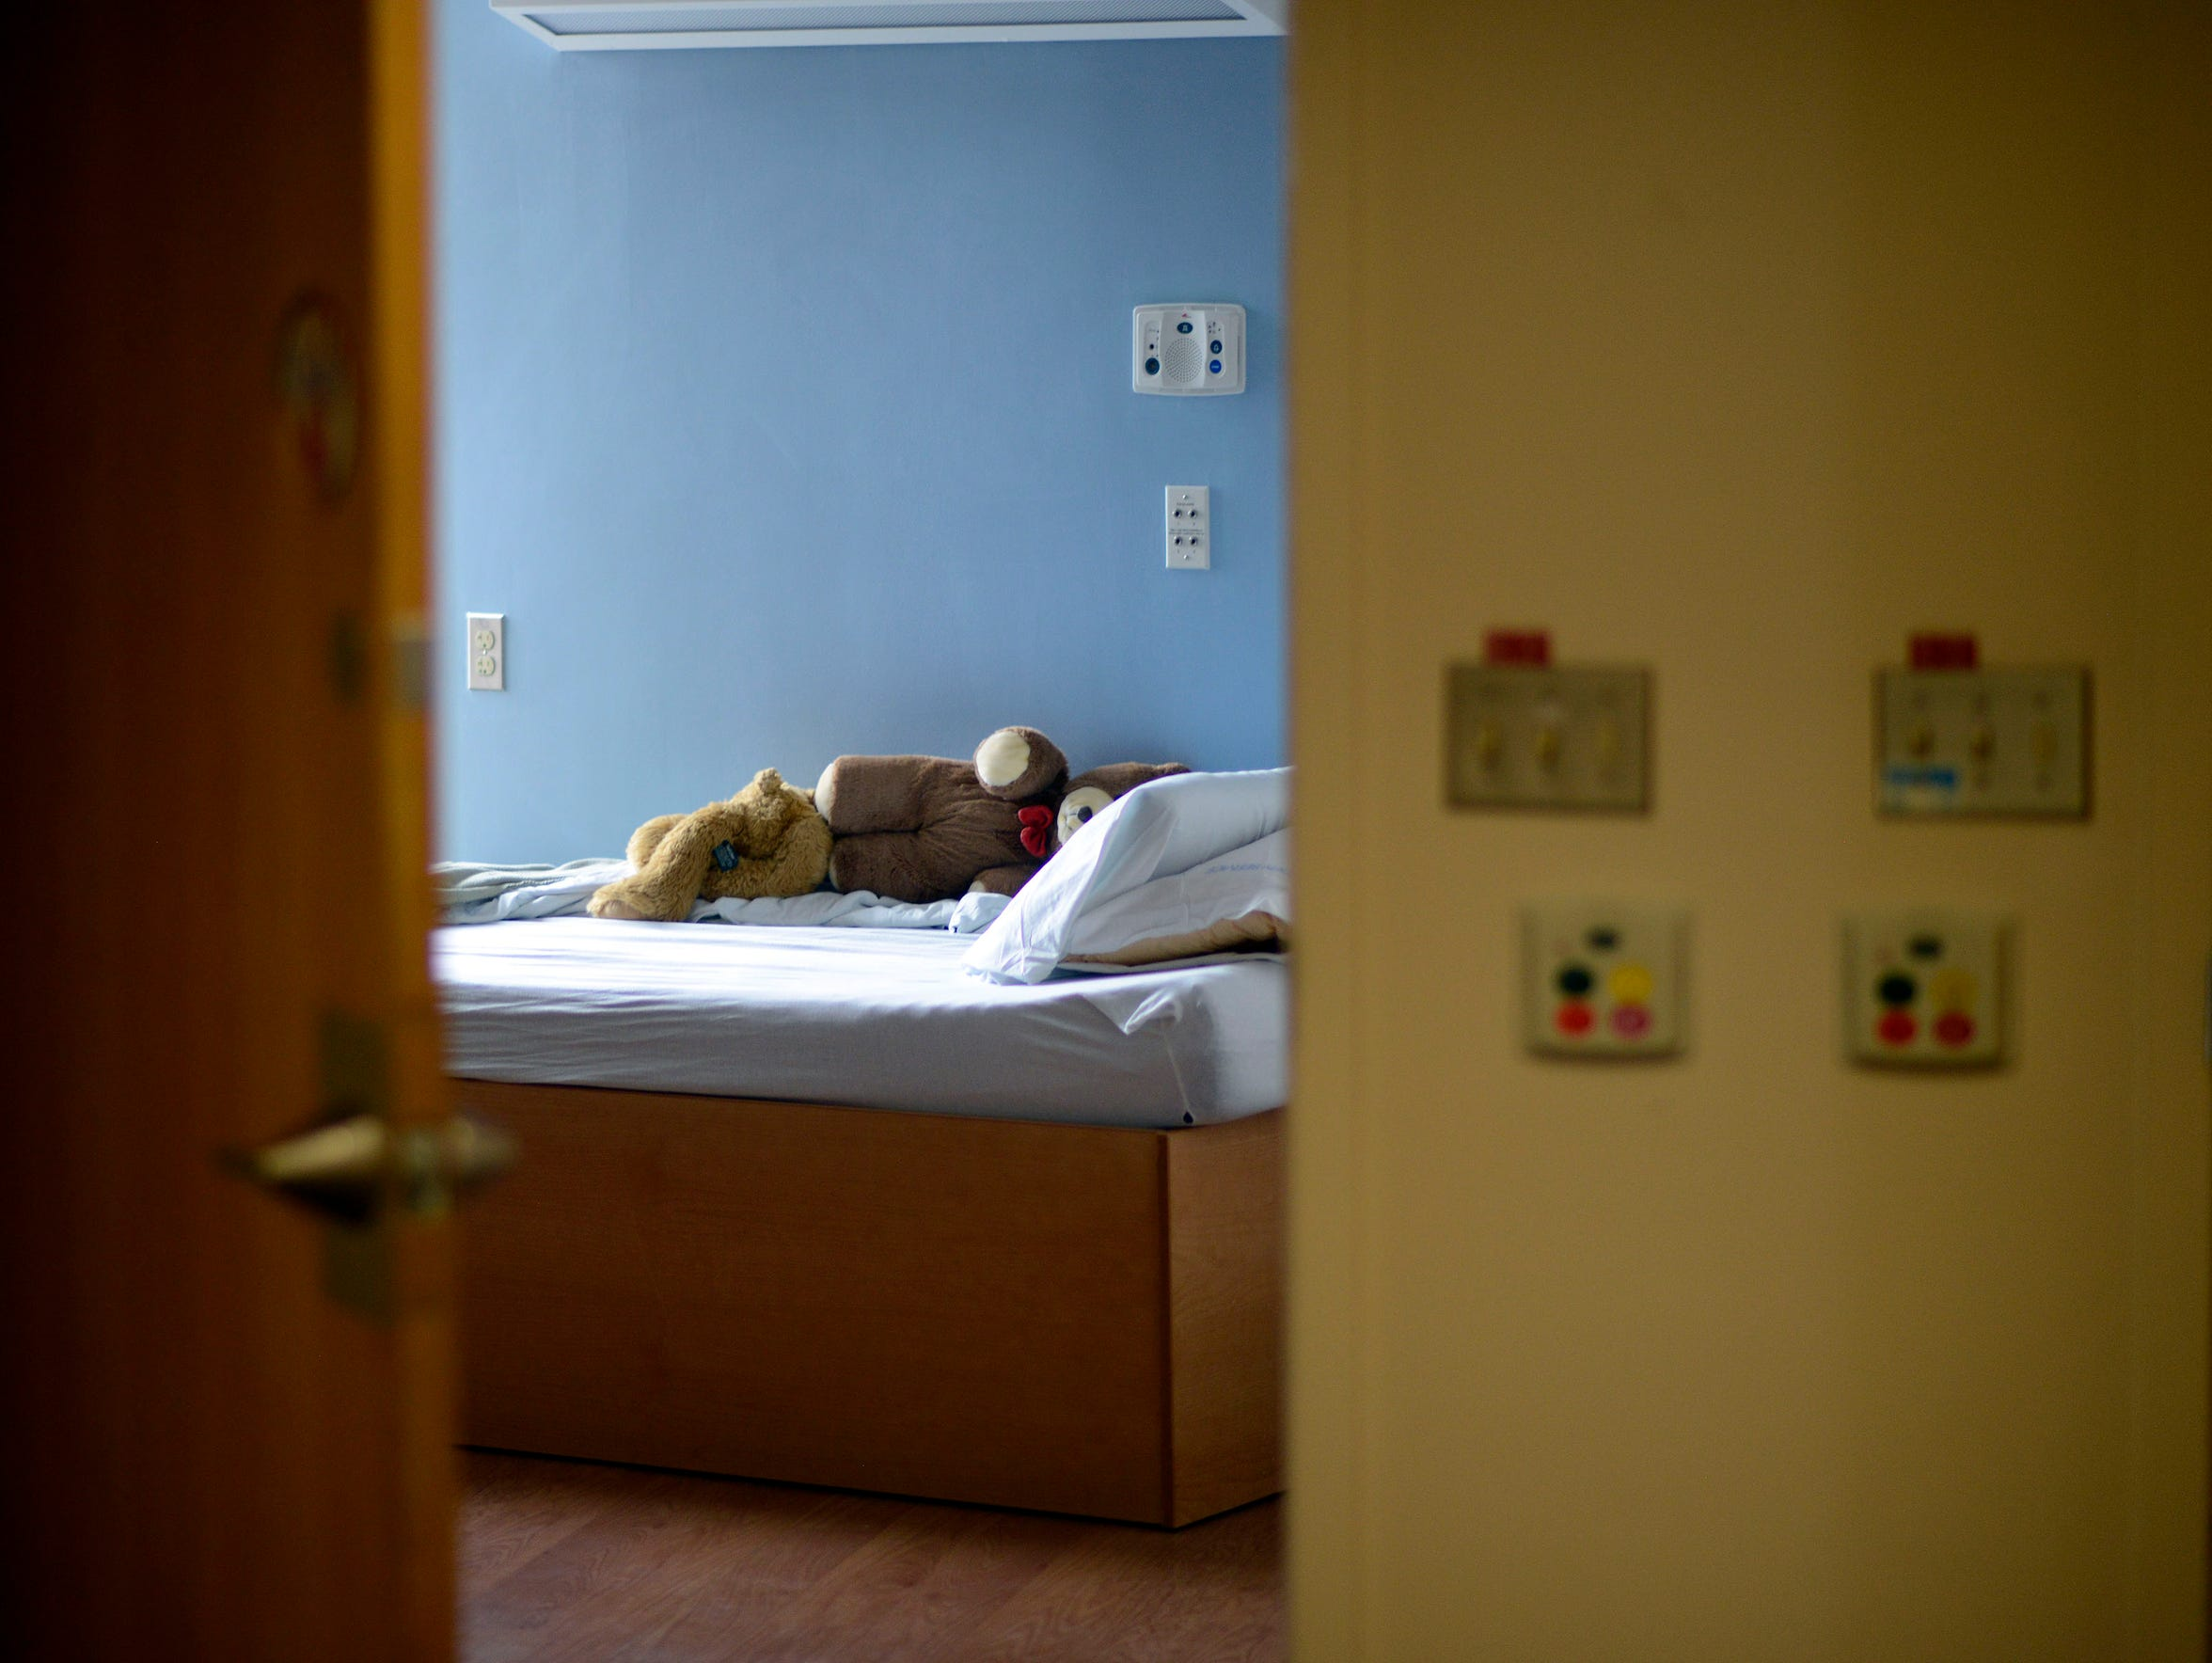 Stuffed teddy bears rest on a bed of a young psychiatric